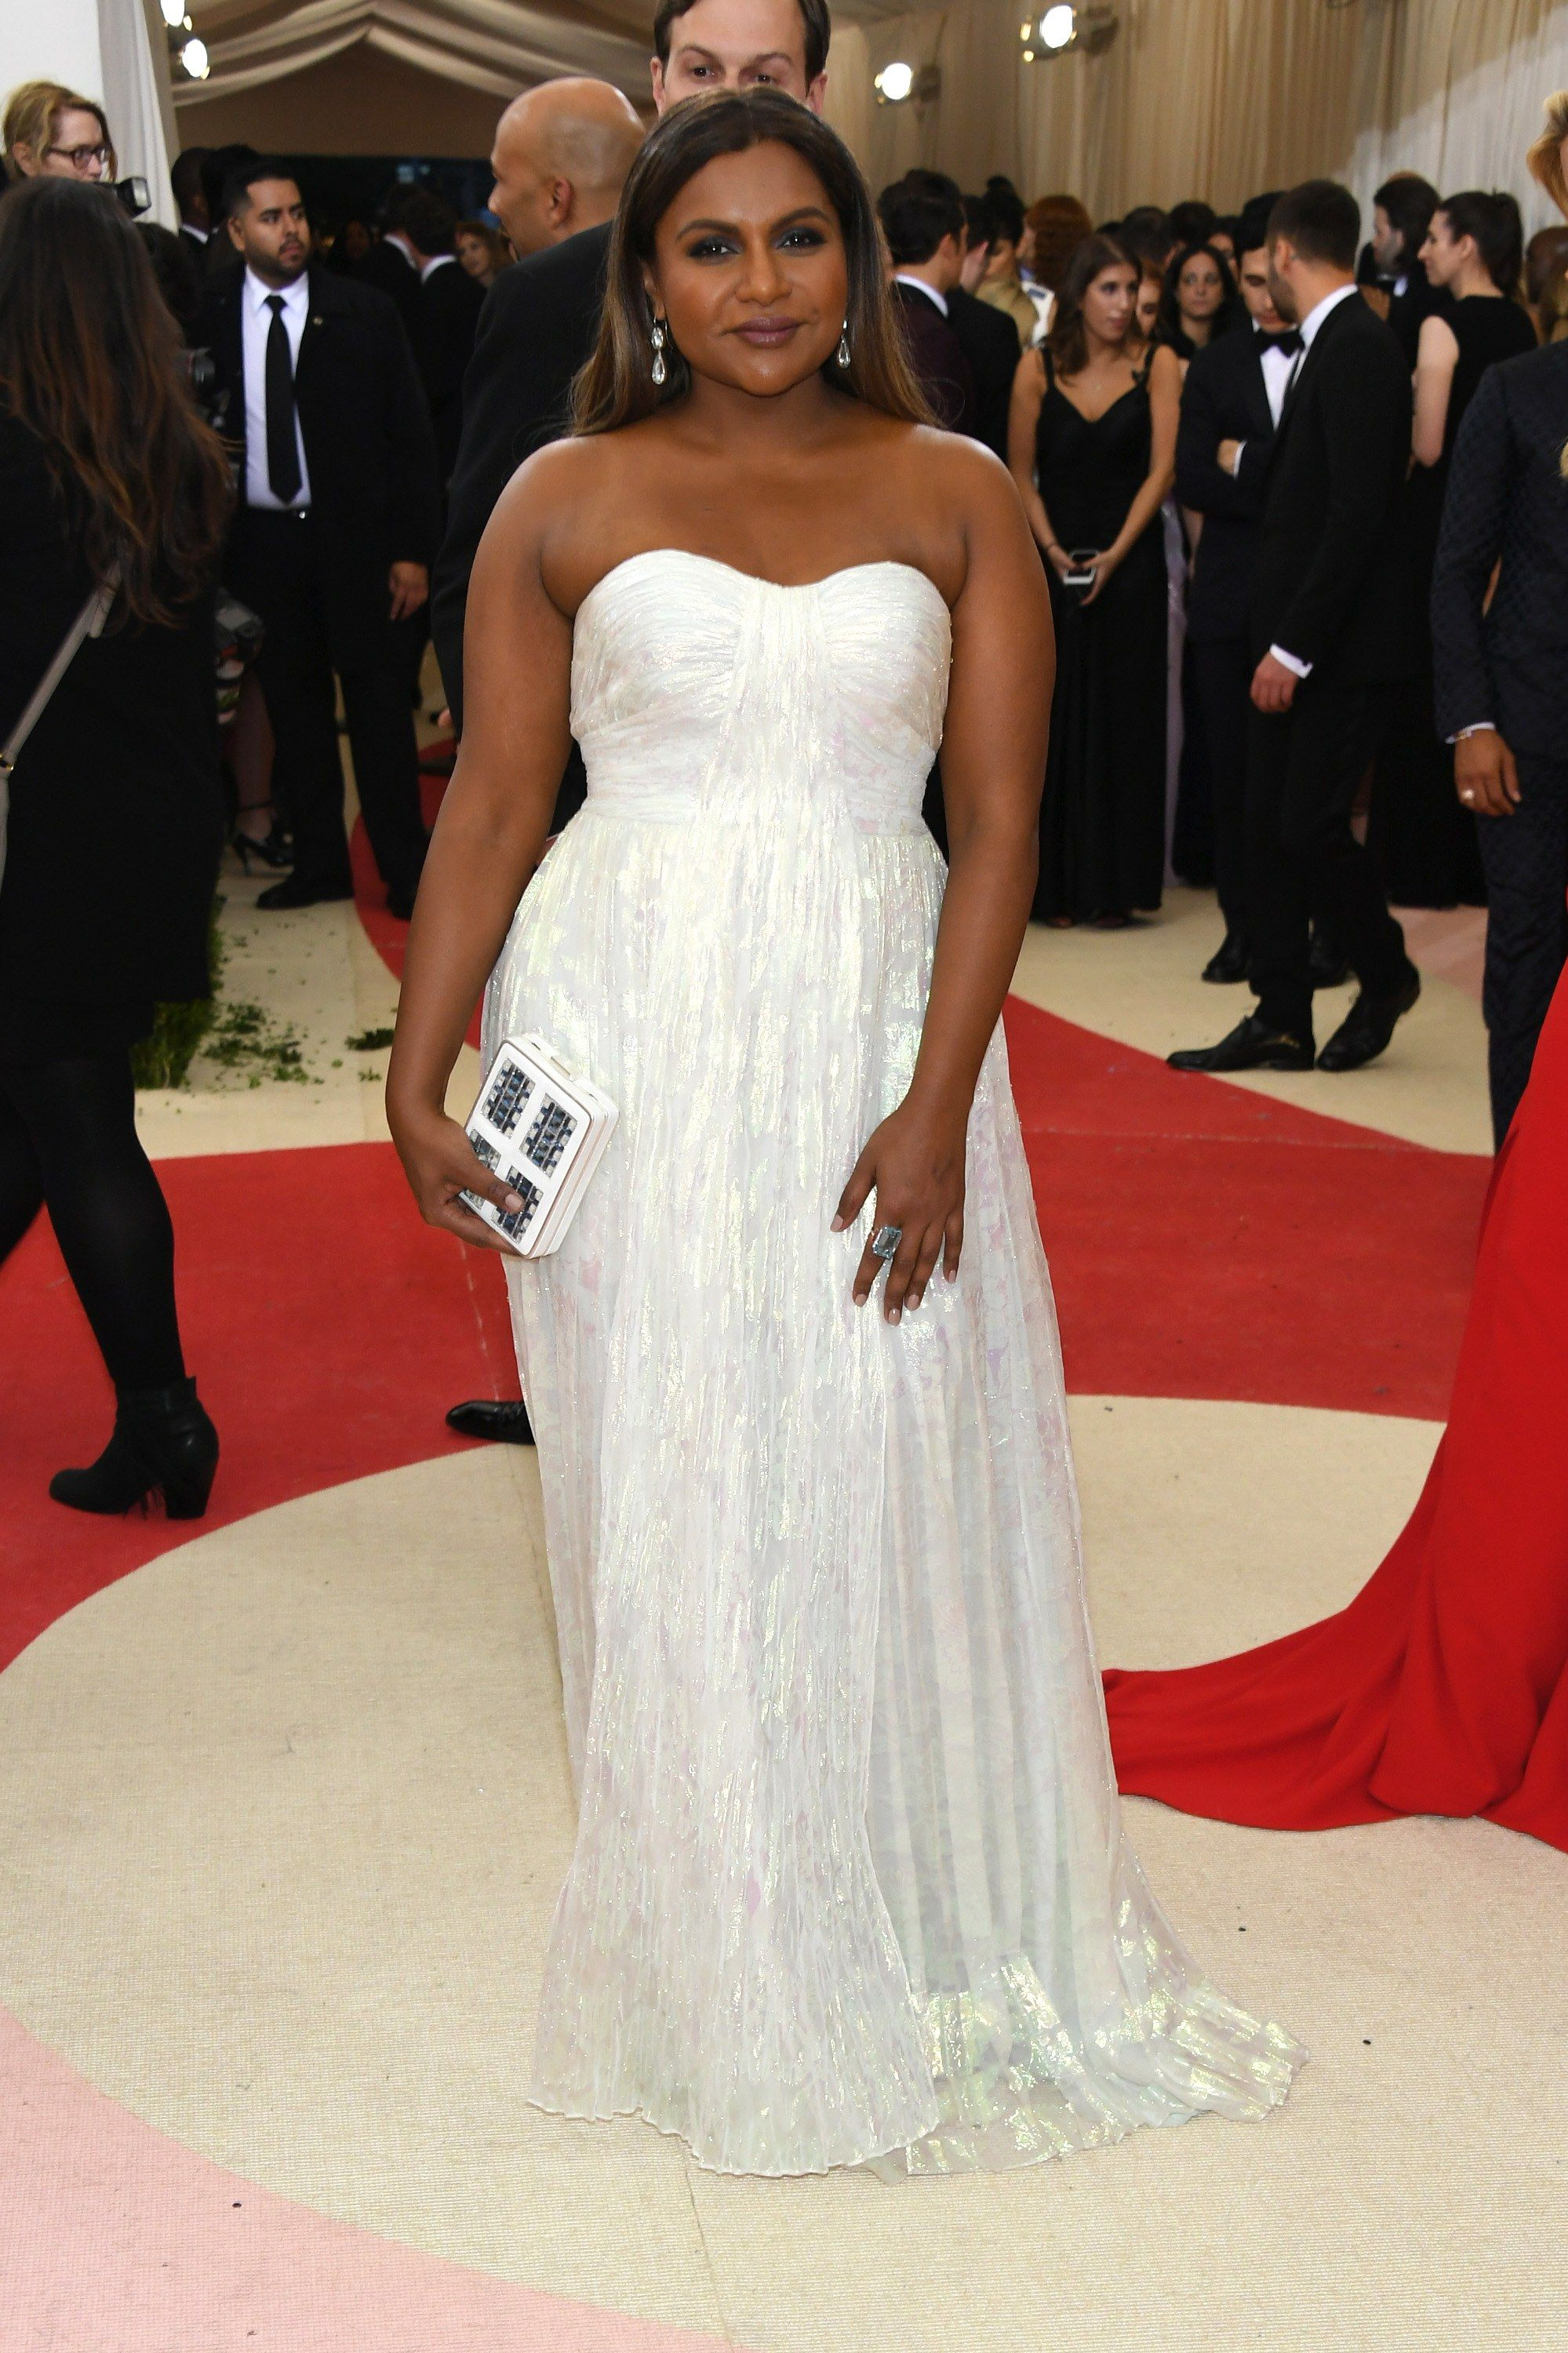 Mindy Kaling S Style Evolution From Emerging Comedy Star To Leading Lady And Rumored Mom To Be Mermaid Wedding Dress Mindy Kaling Style Met Gala 2016